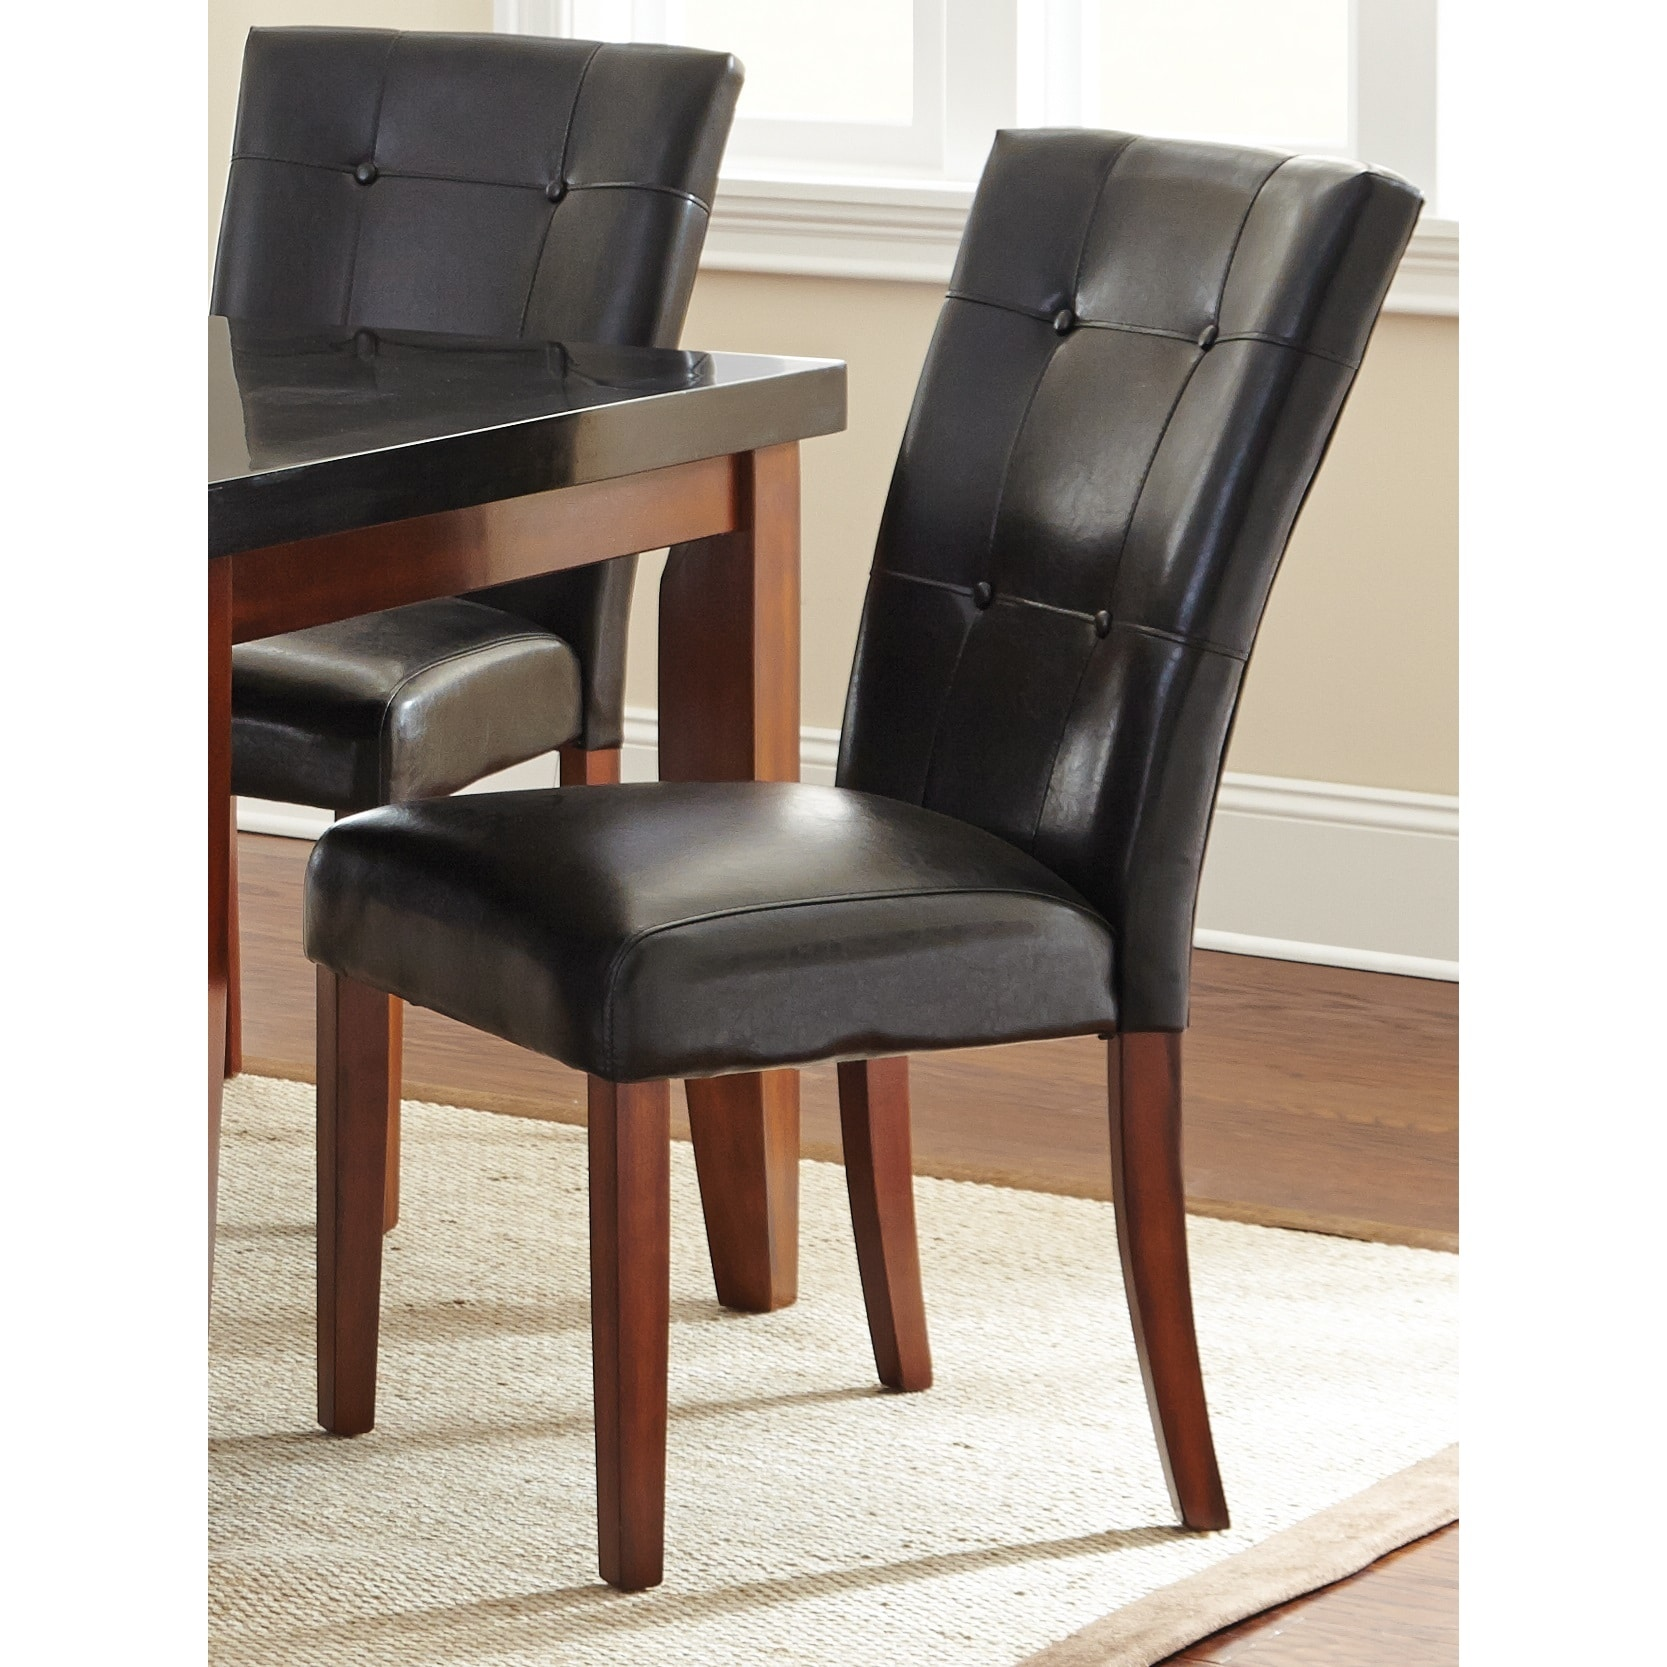 Bailey Black Button-tufted Parson Chair (Set of 2) by Gre...